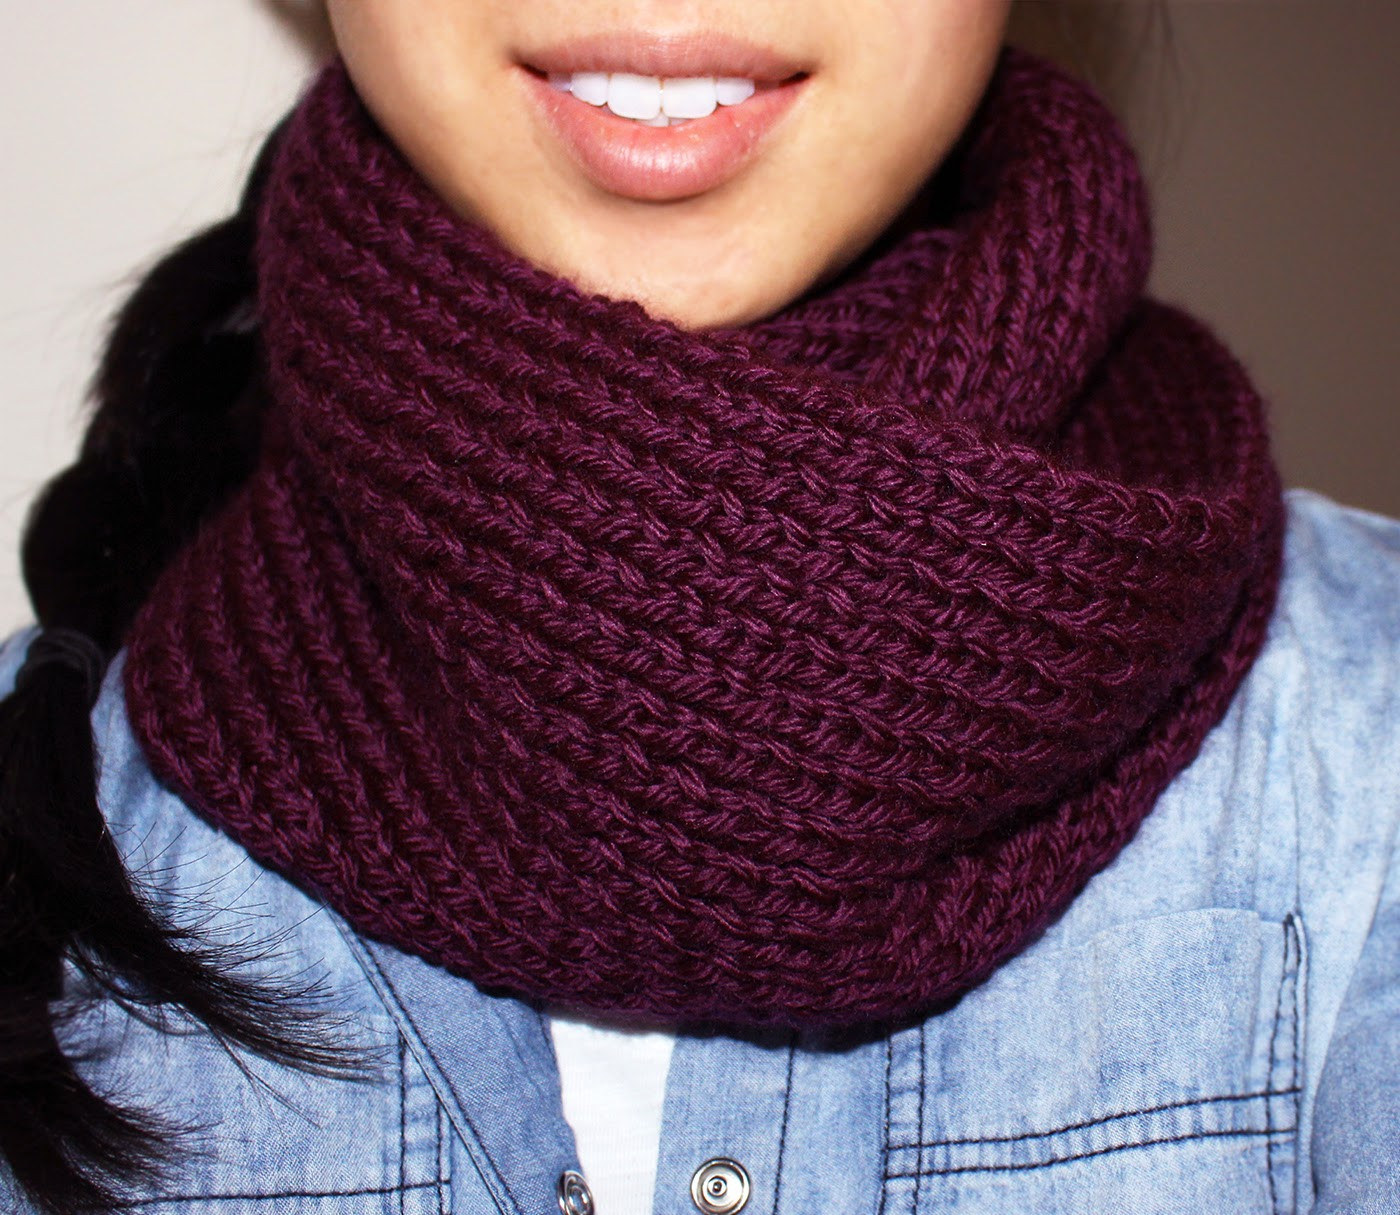 Infinity Scarf Knitting Pattern Awesome Purllin Acai Infinity Circle Scarf [free Knitting Pattern] Of New 43 Images Infinity Scarf Knitting Pattern